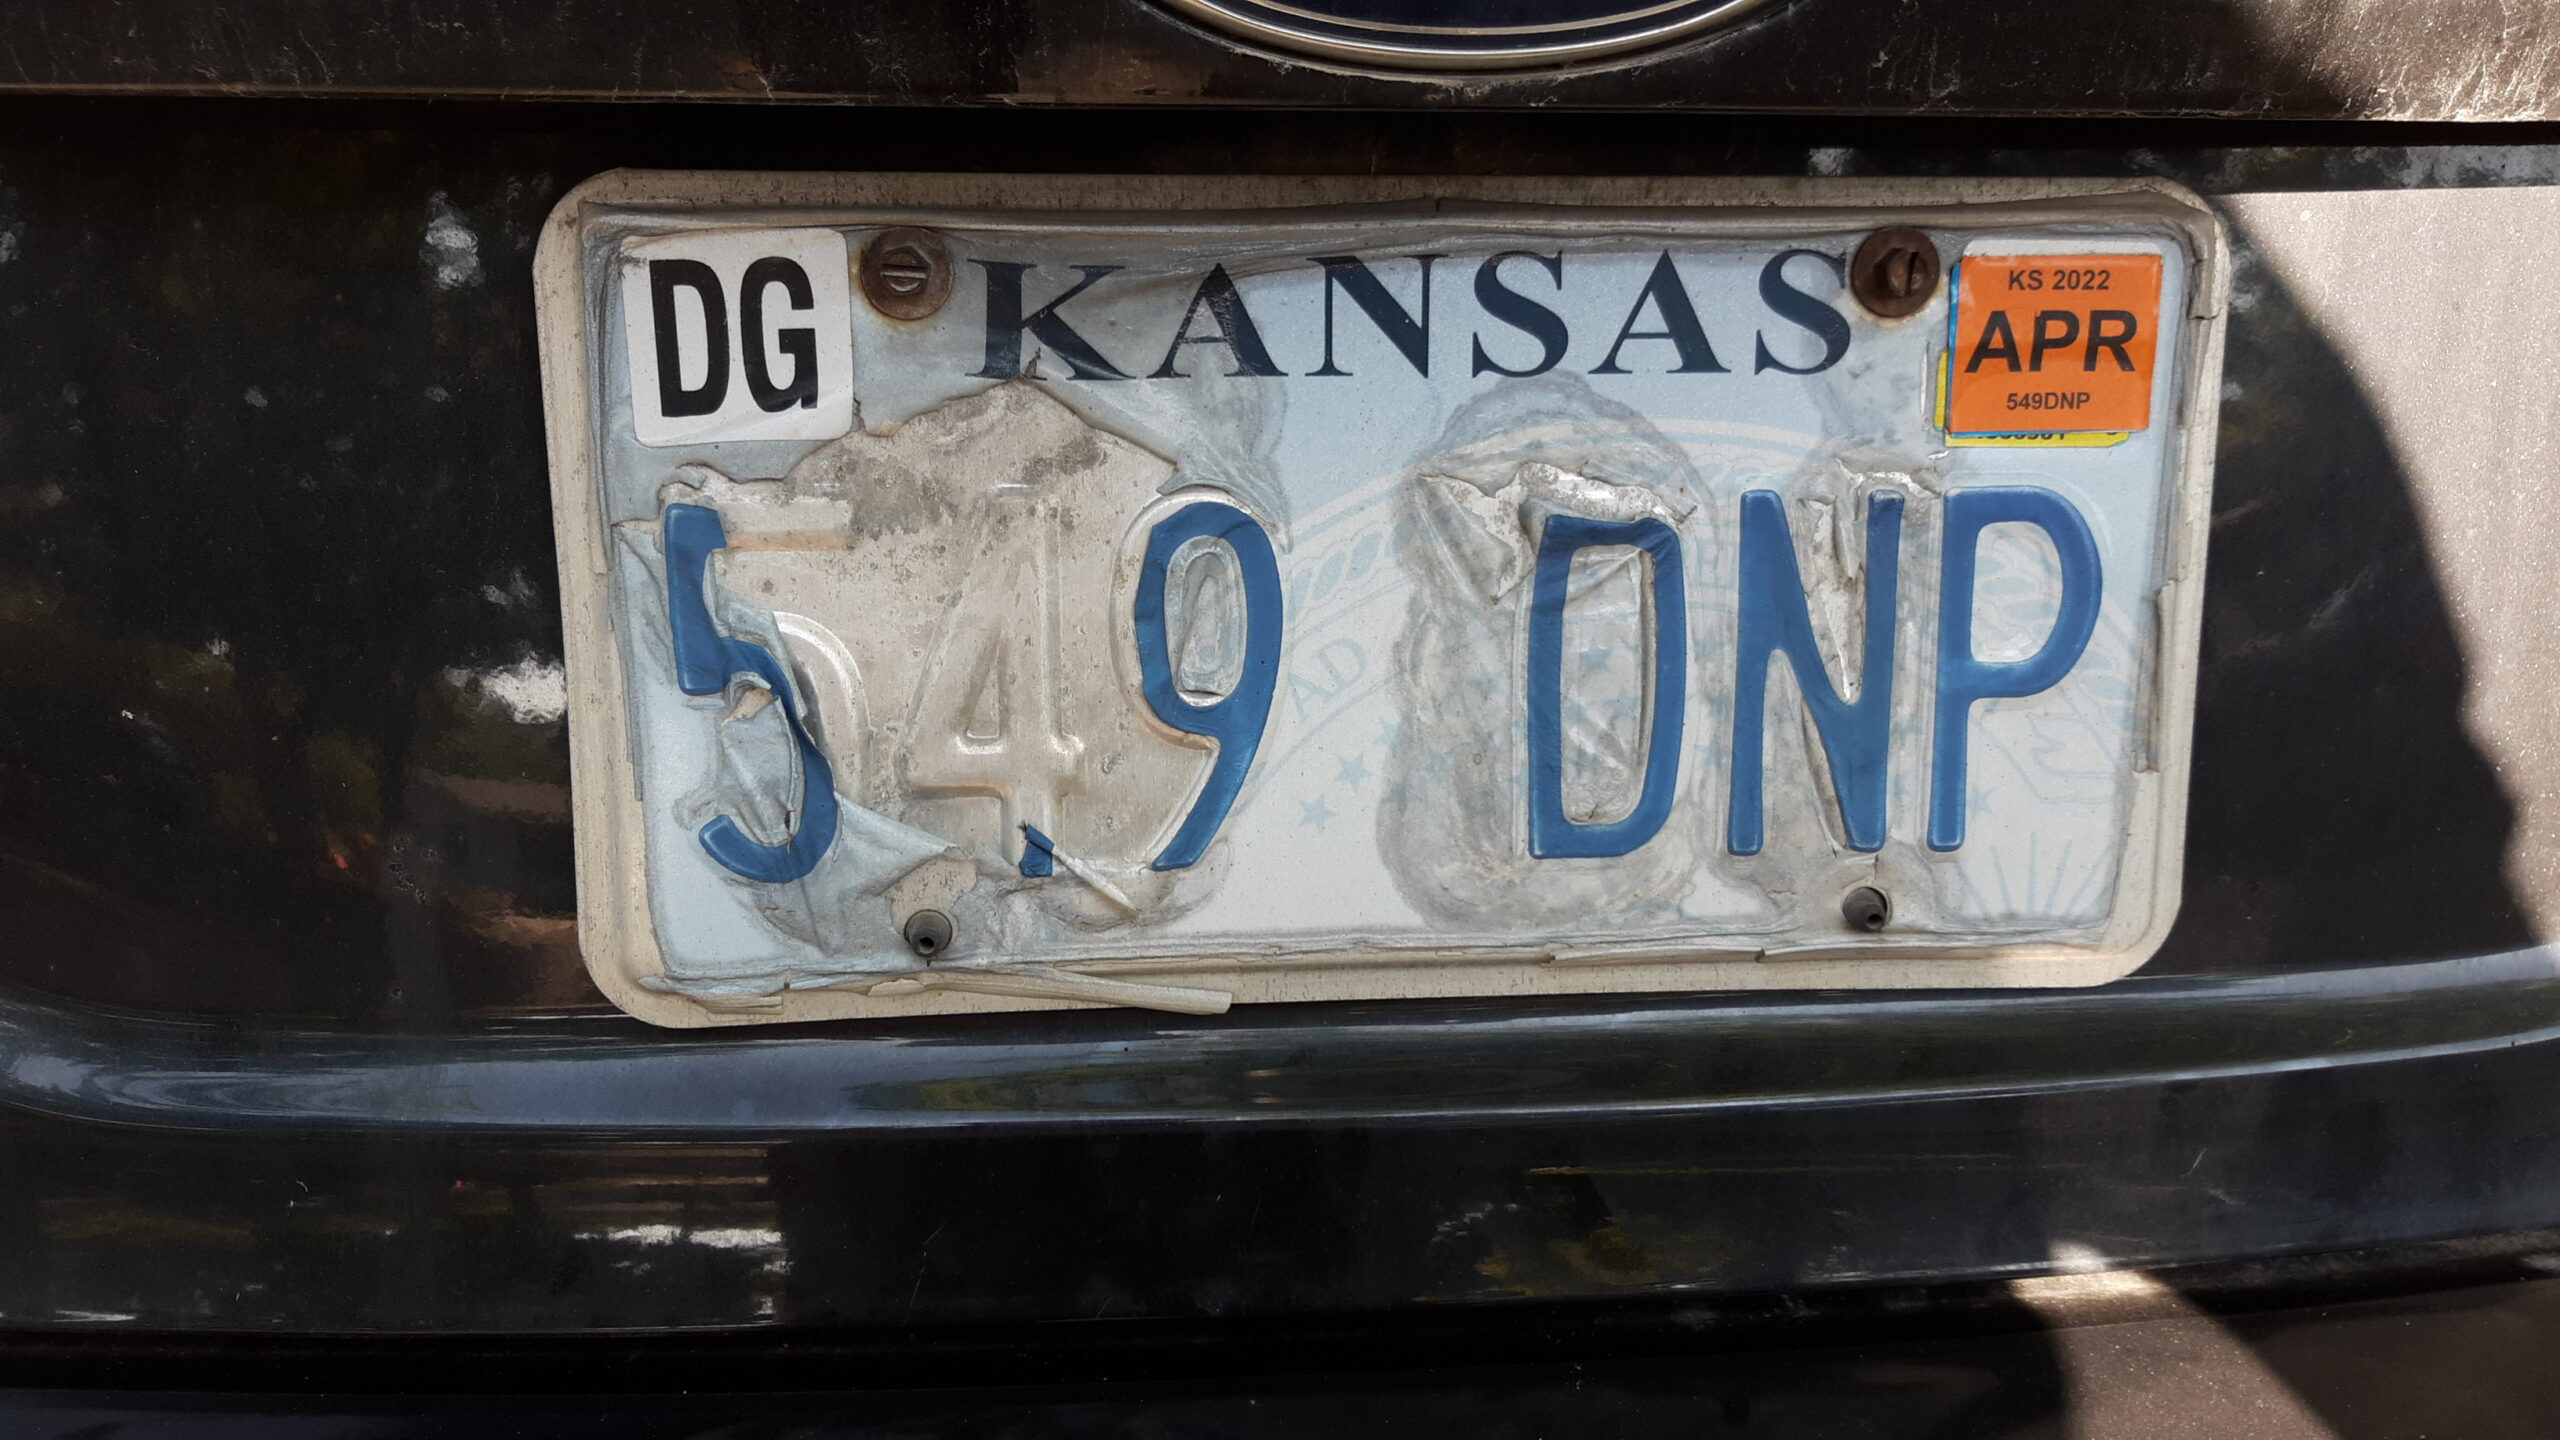 Older raised-letter Kansas license plates subject to distortion from surface blisters